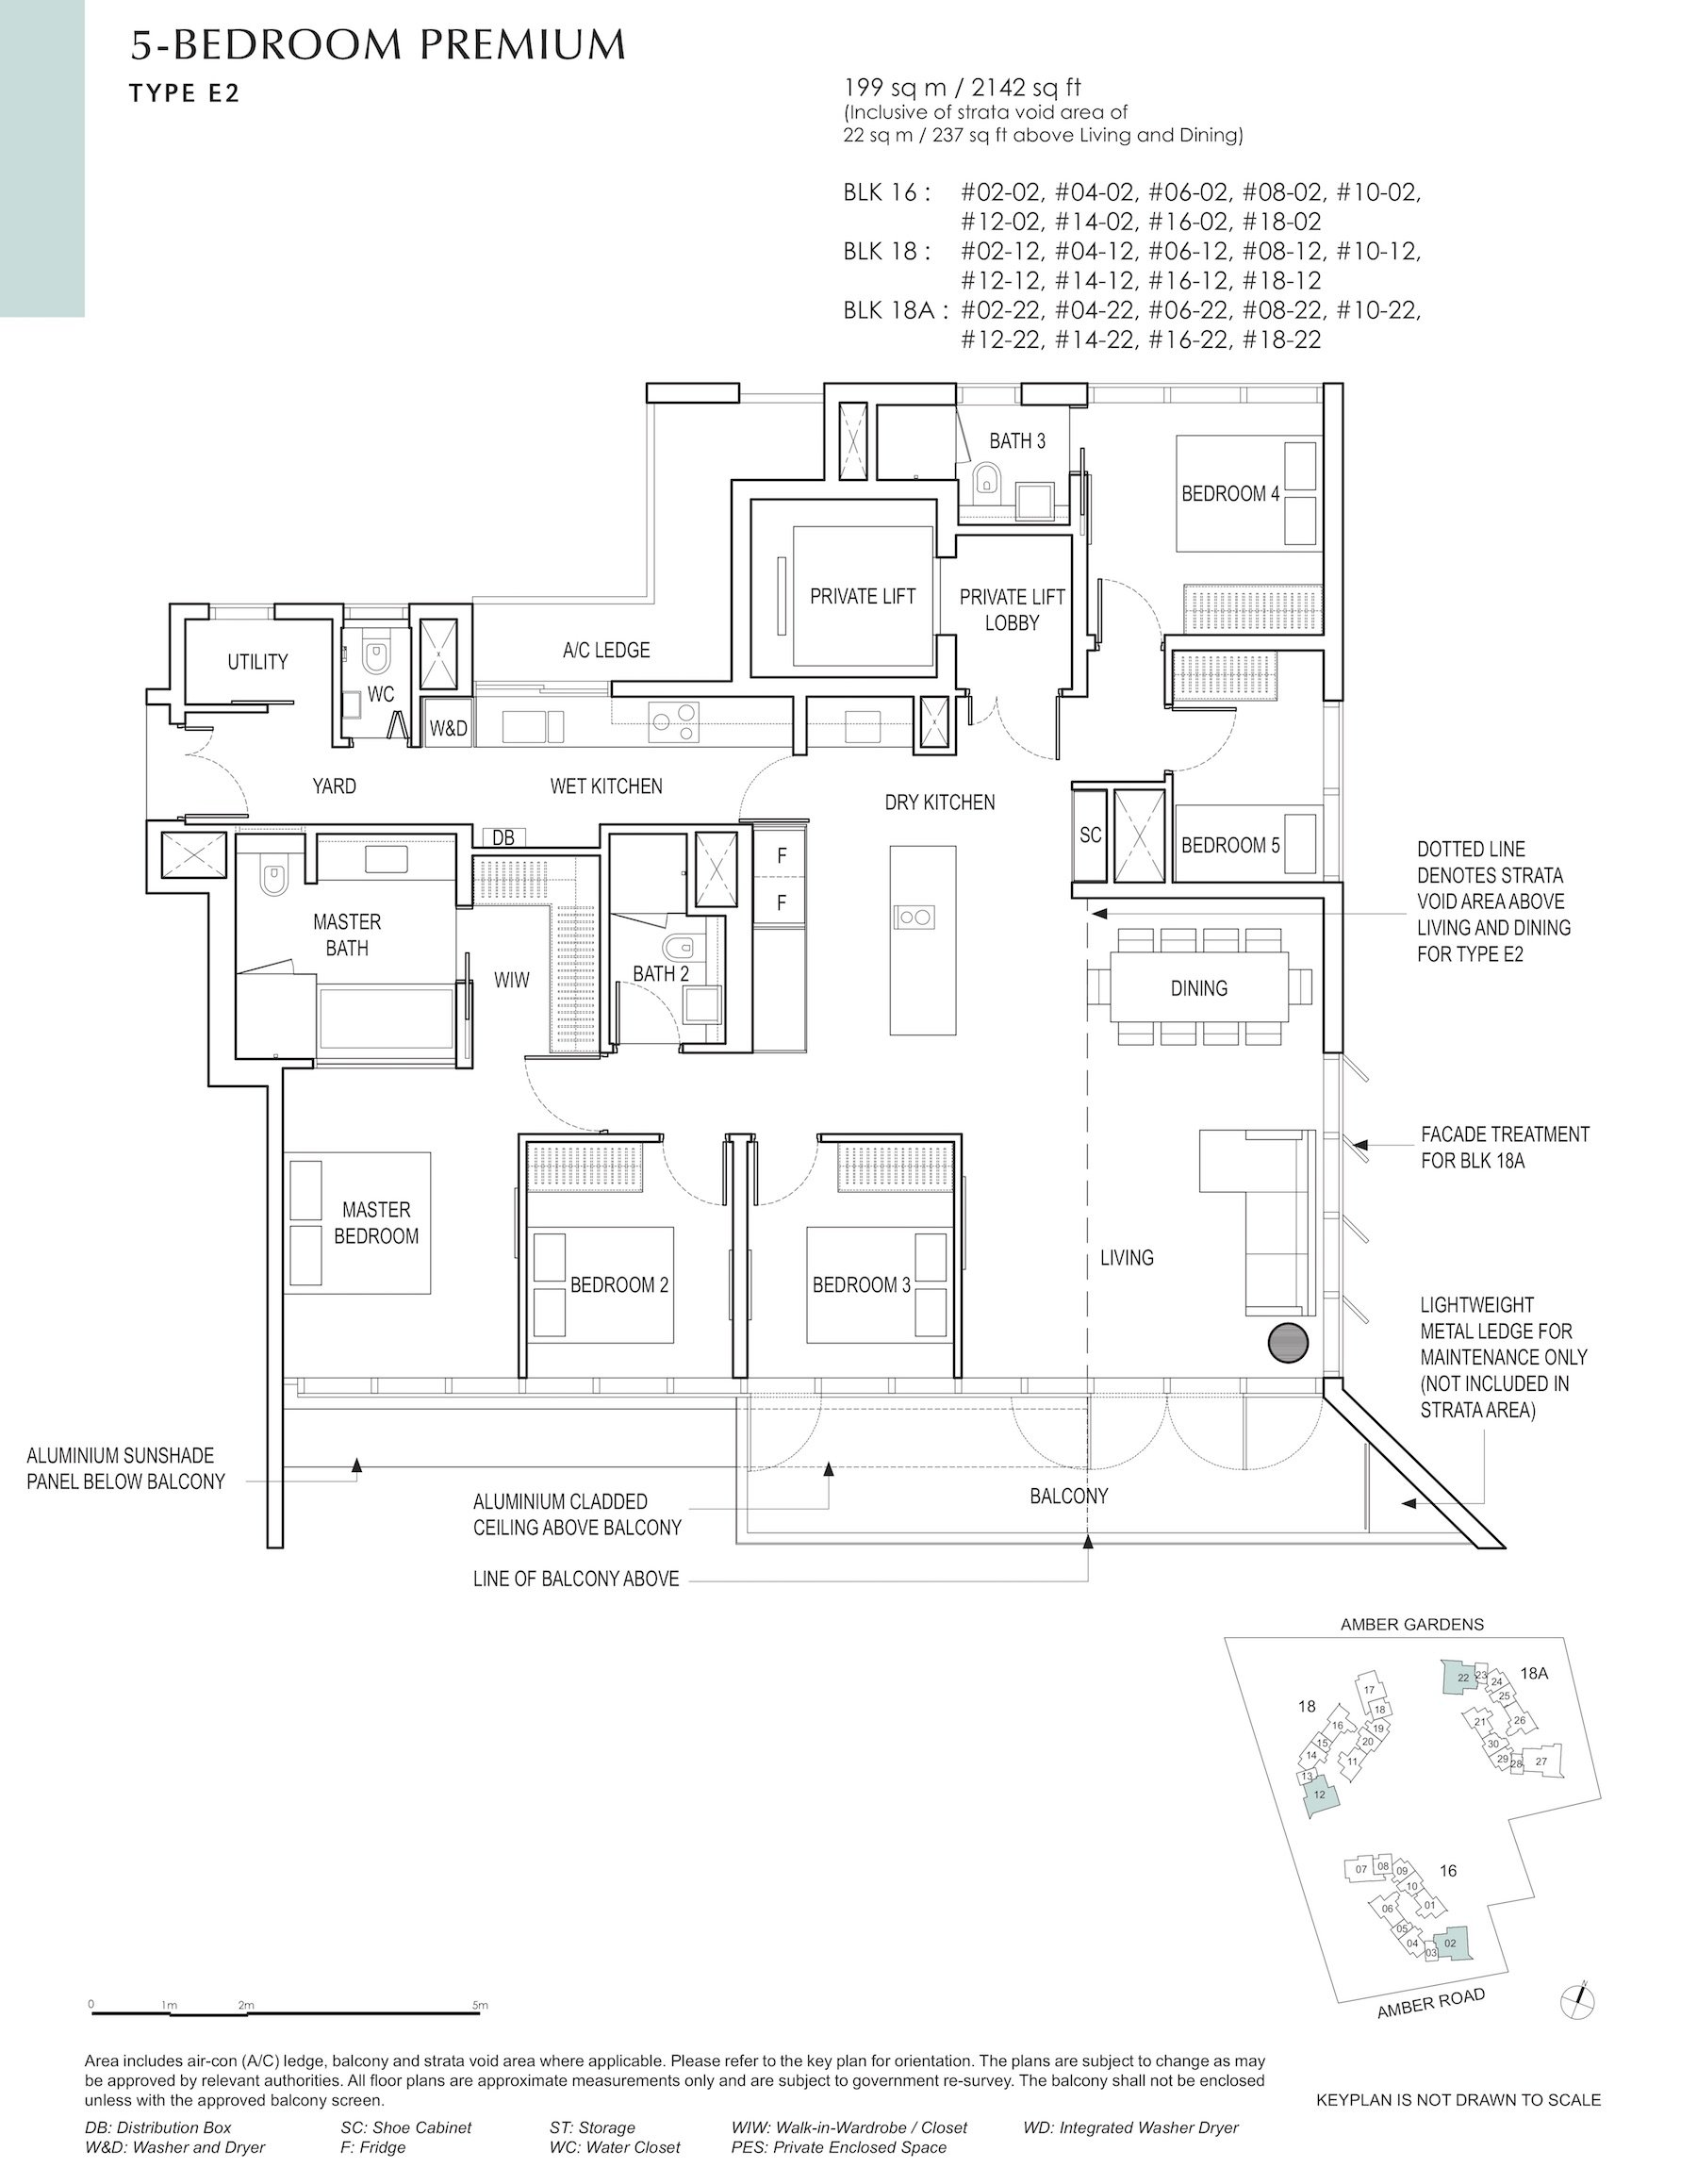 Amber Park 安铂苑 floor plan 5 bedroom premium 5卧房优质 E2